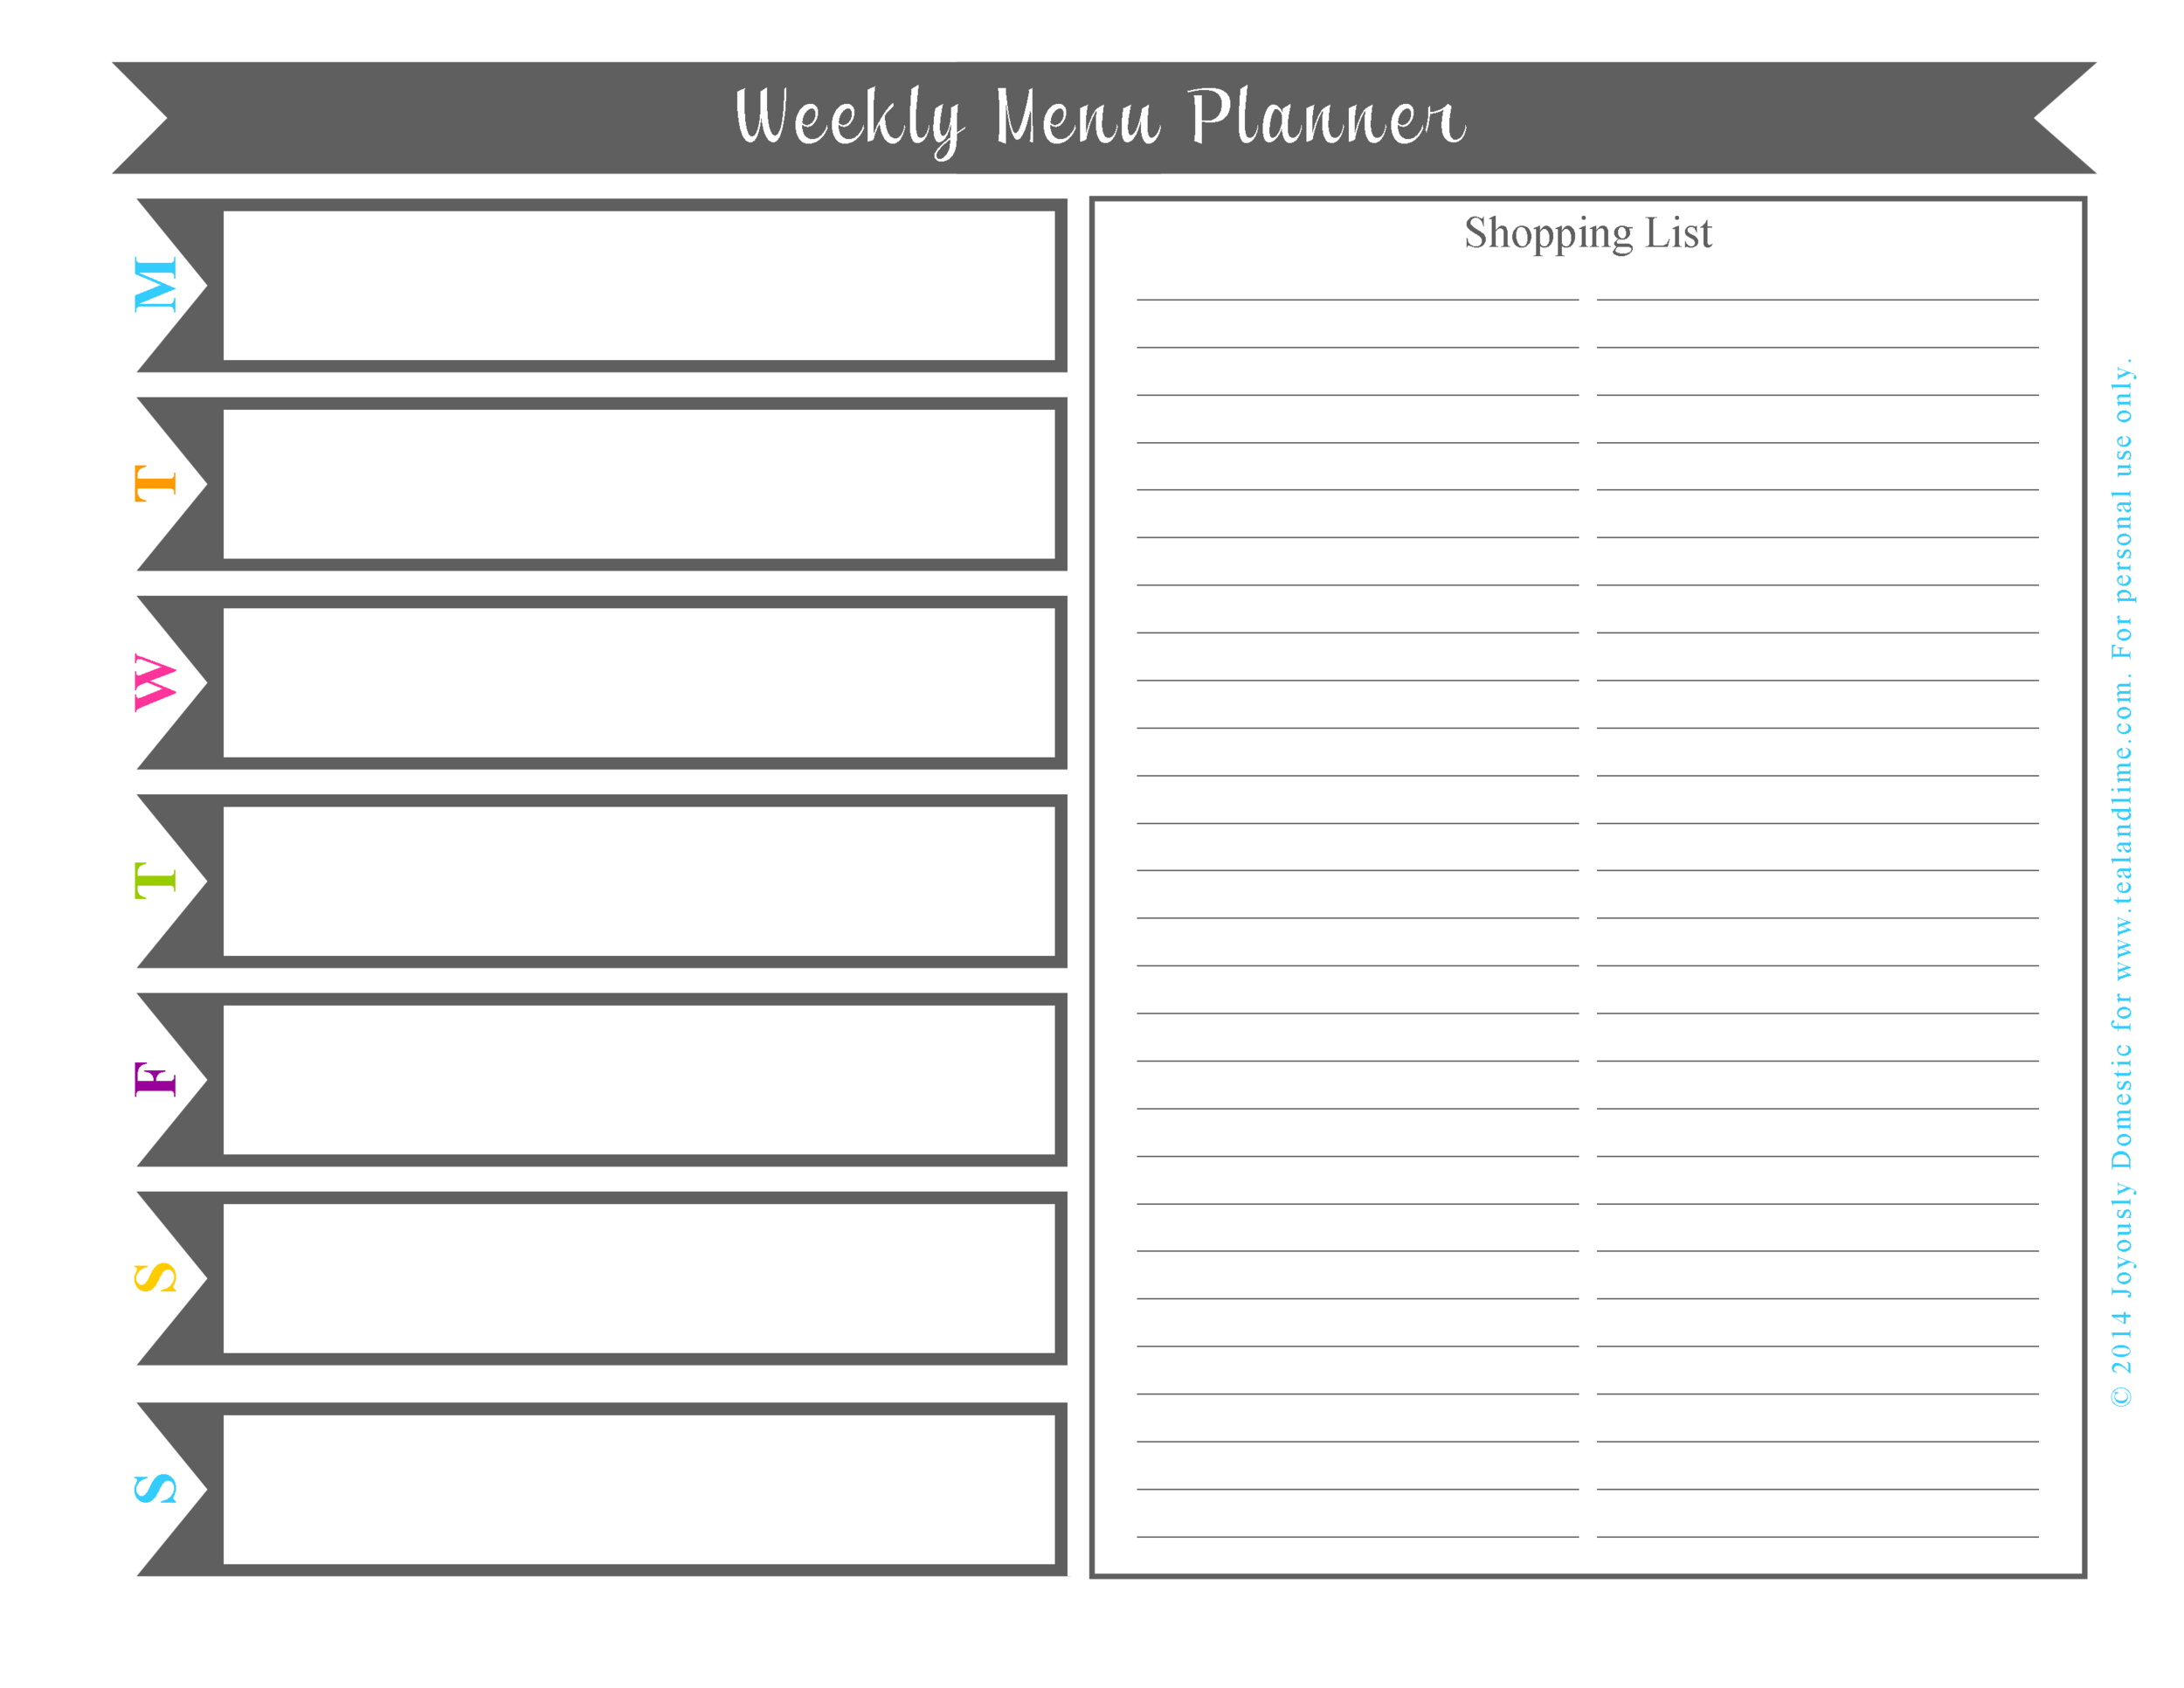 Read this related post from Joyously Domestic and download her printable menu planner.